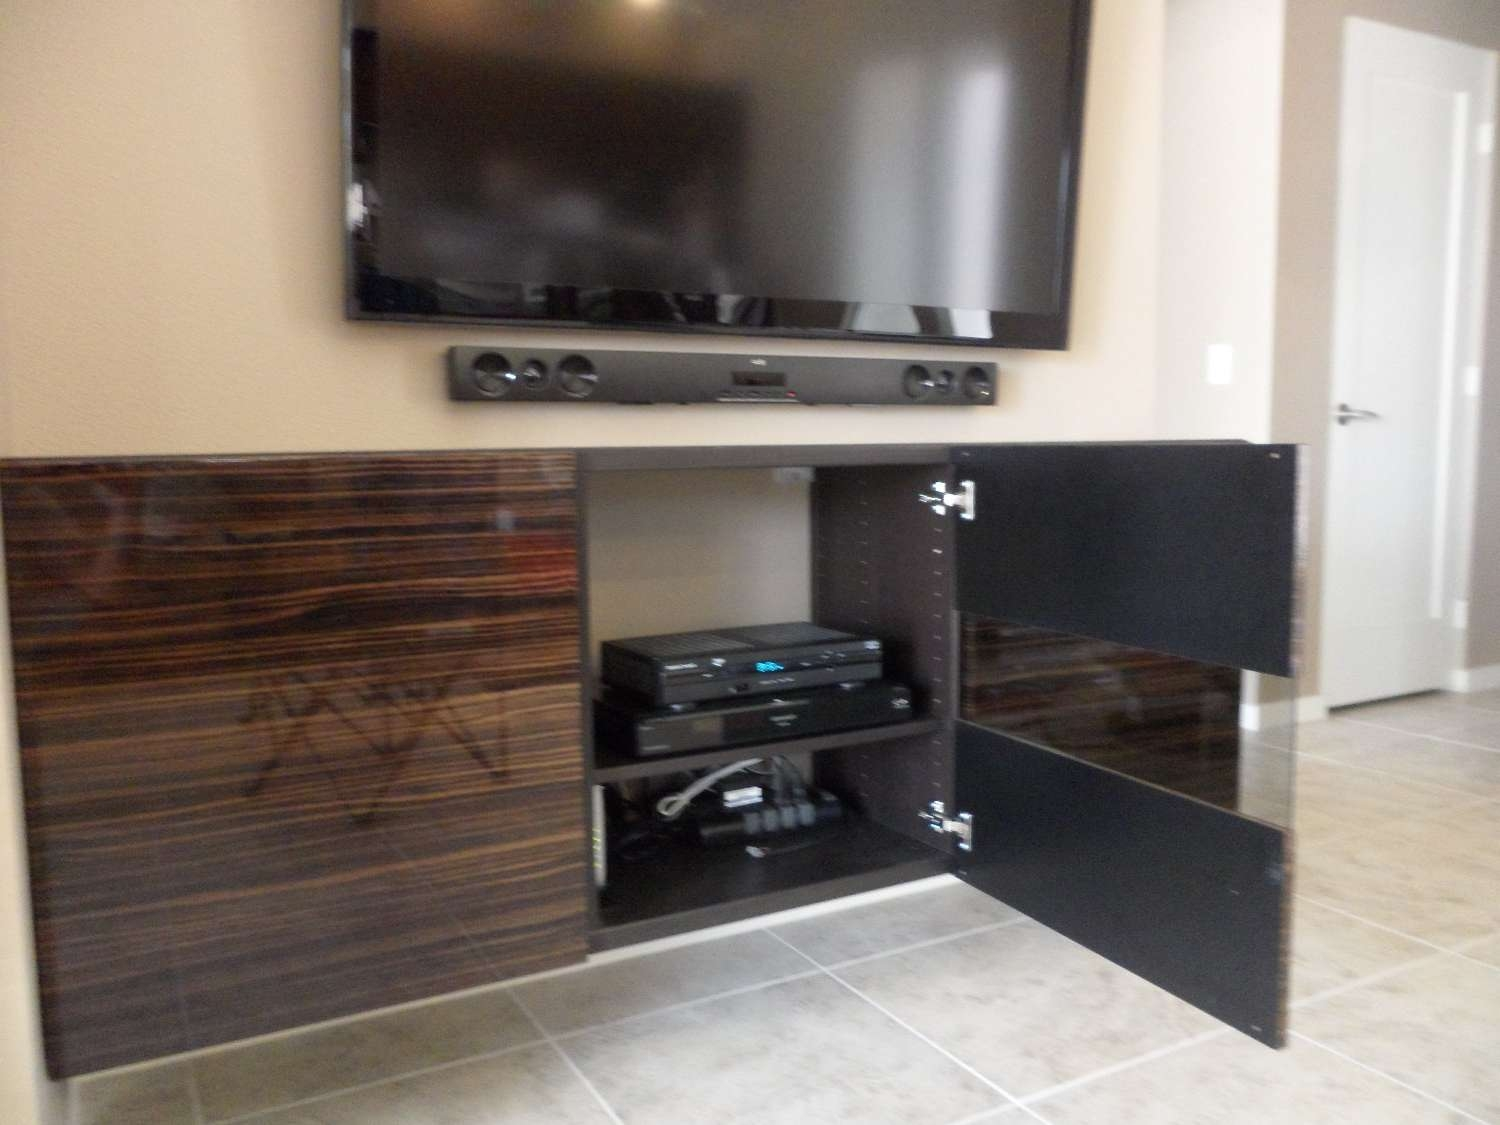 Ikea Tv Stand With Glass Doors Images – Doors Design Ideas In Wall Mounted Tv Cabinets Ikea (Gallery 14 of 20)